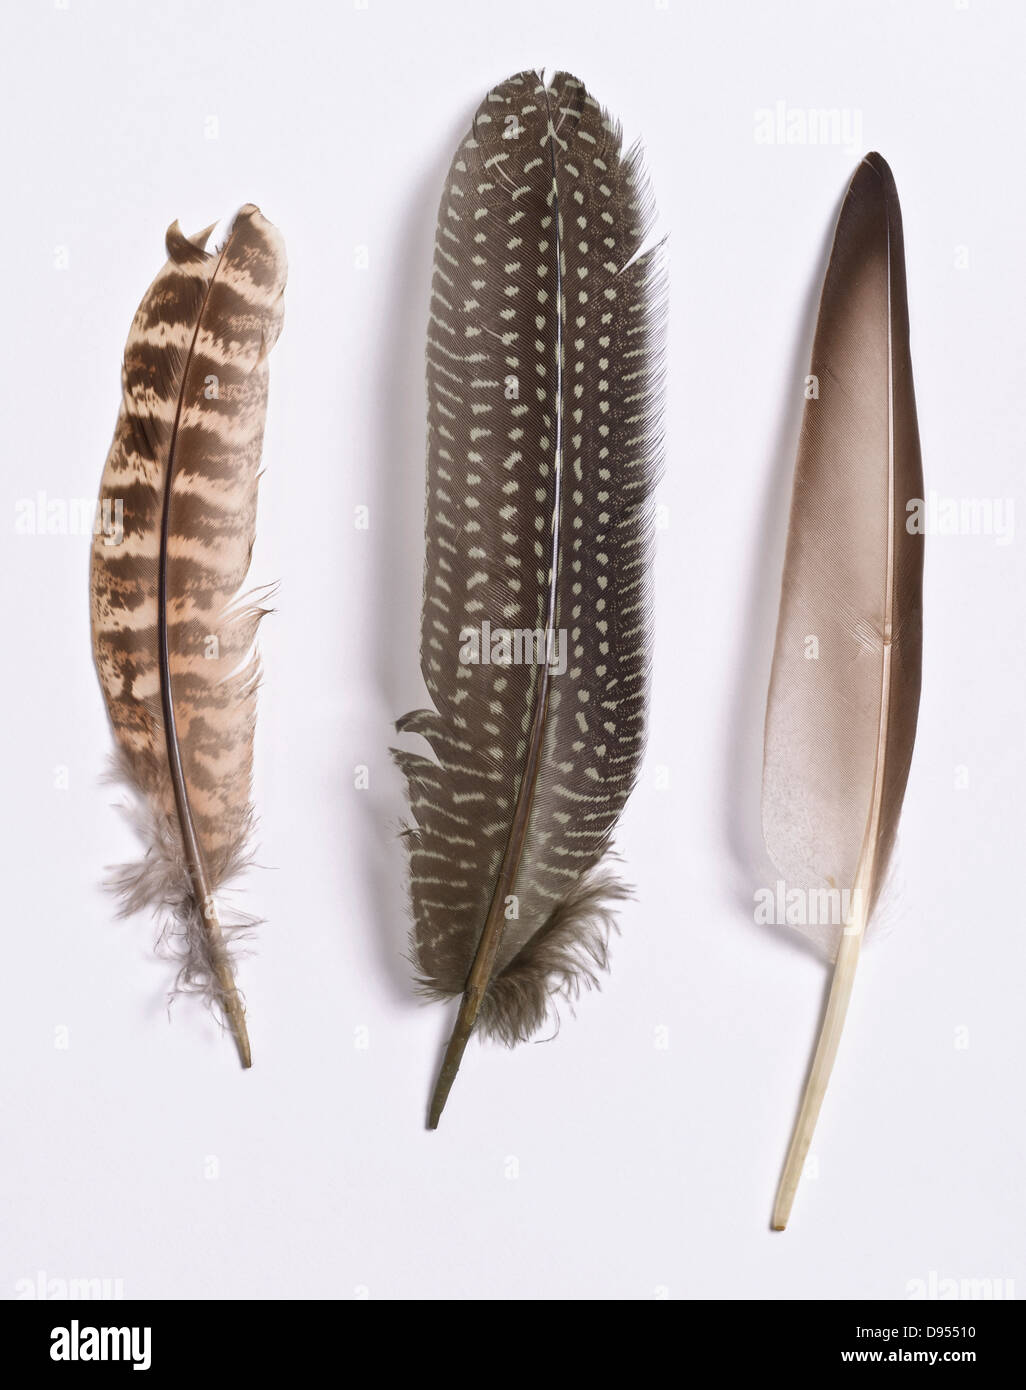 3 bird feathers Left is a Hen Wing Quill, Centre is Hen Pheasant, Right is Gray Duck - Stock Image